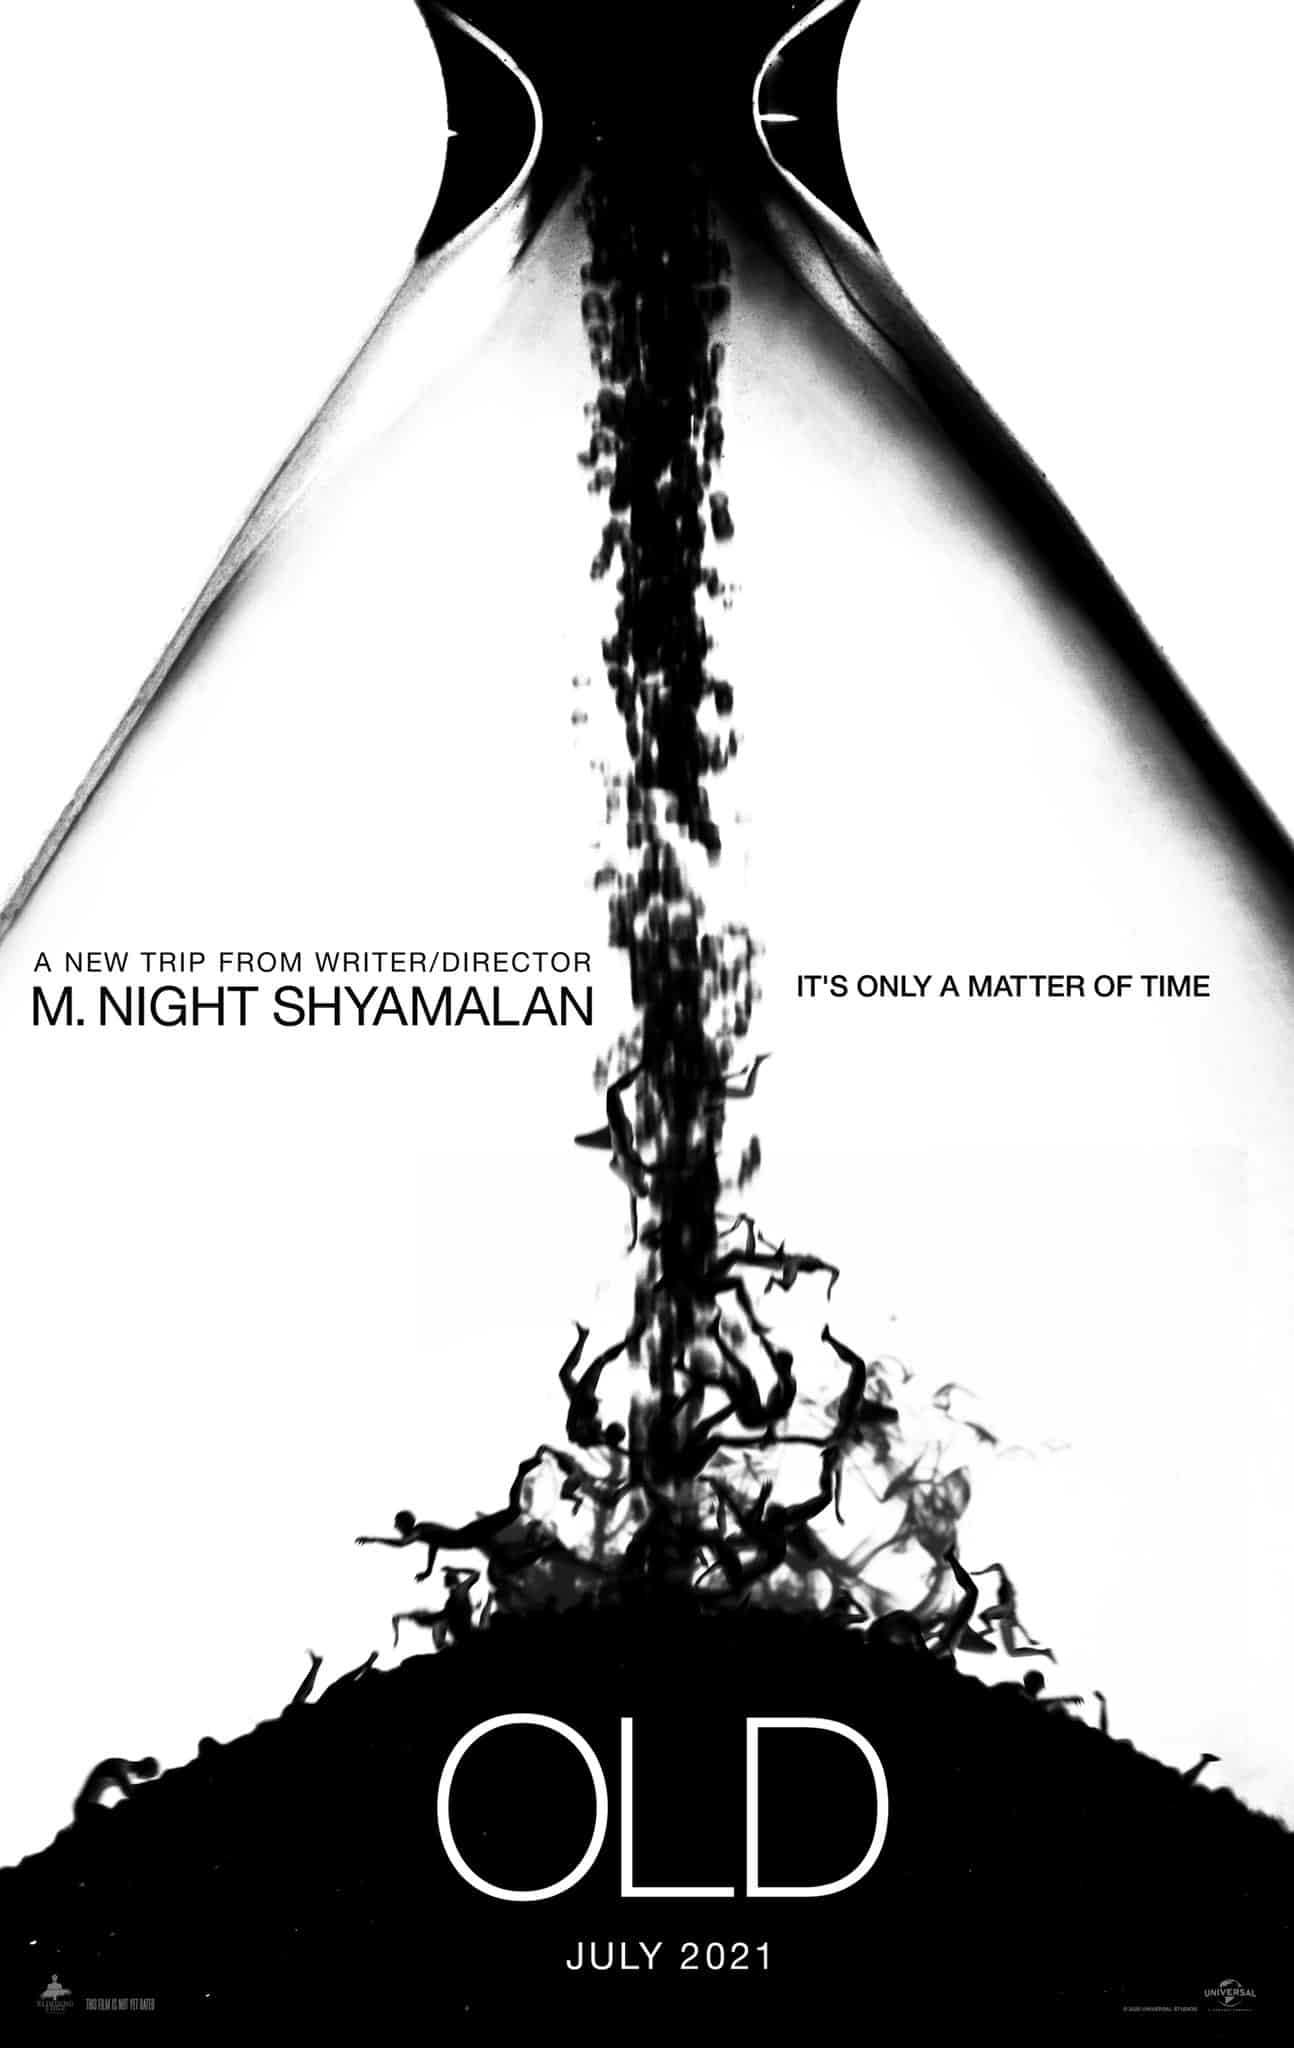 M. Night Shyamalan reveals title and art for his new OLD film